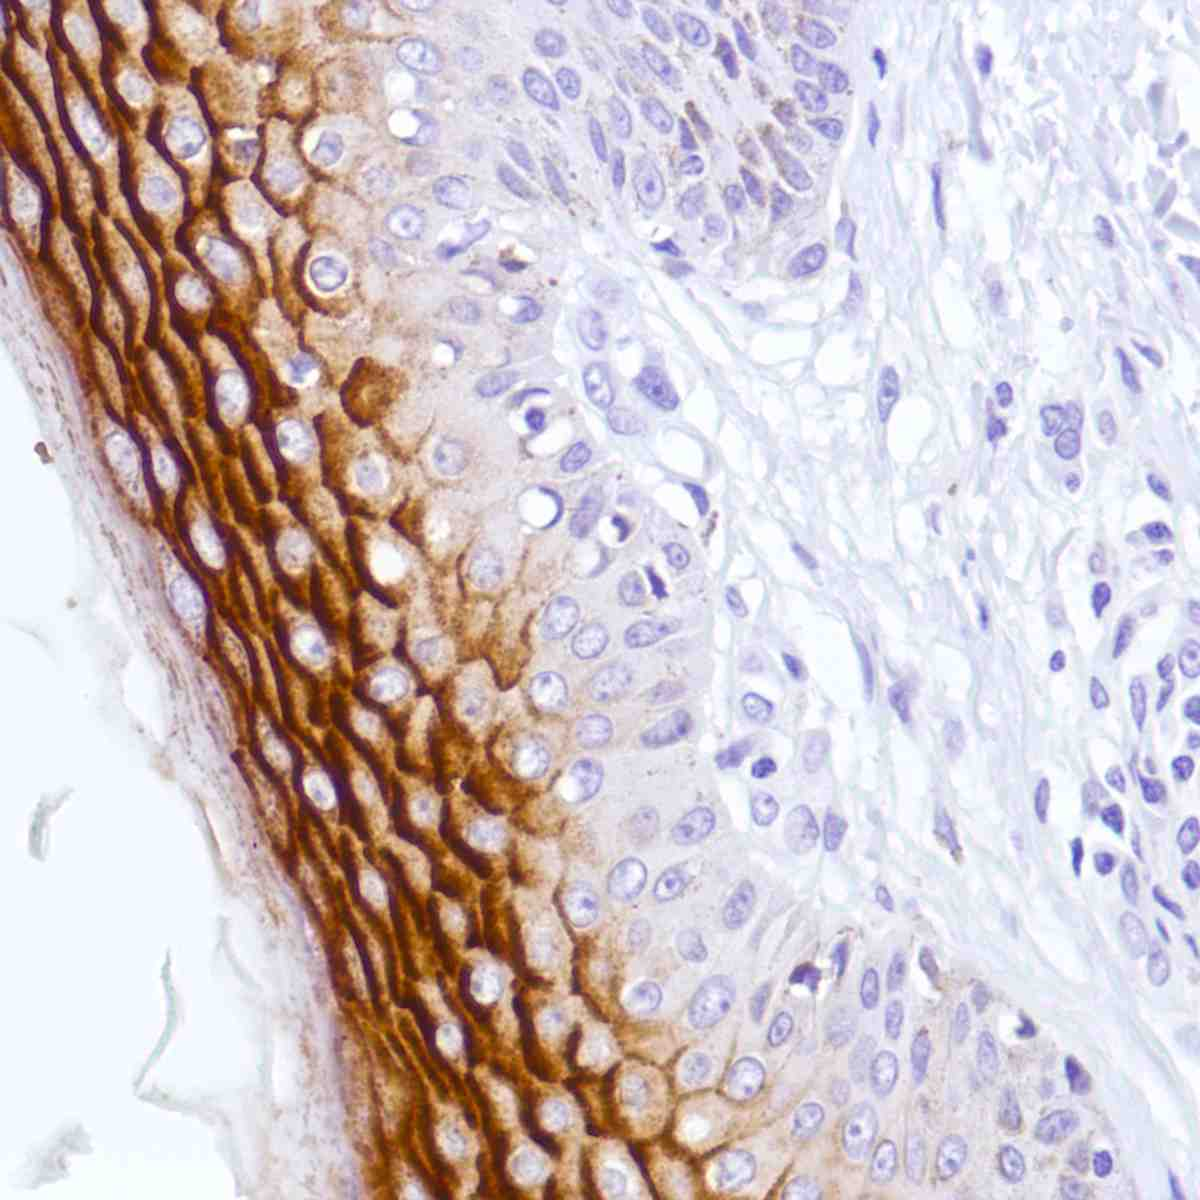 Human Skin stained with anti-C4.4A antibody